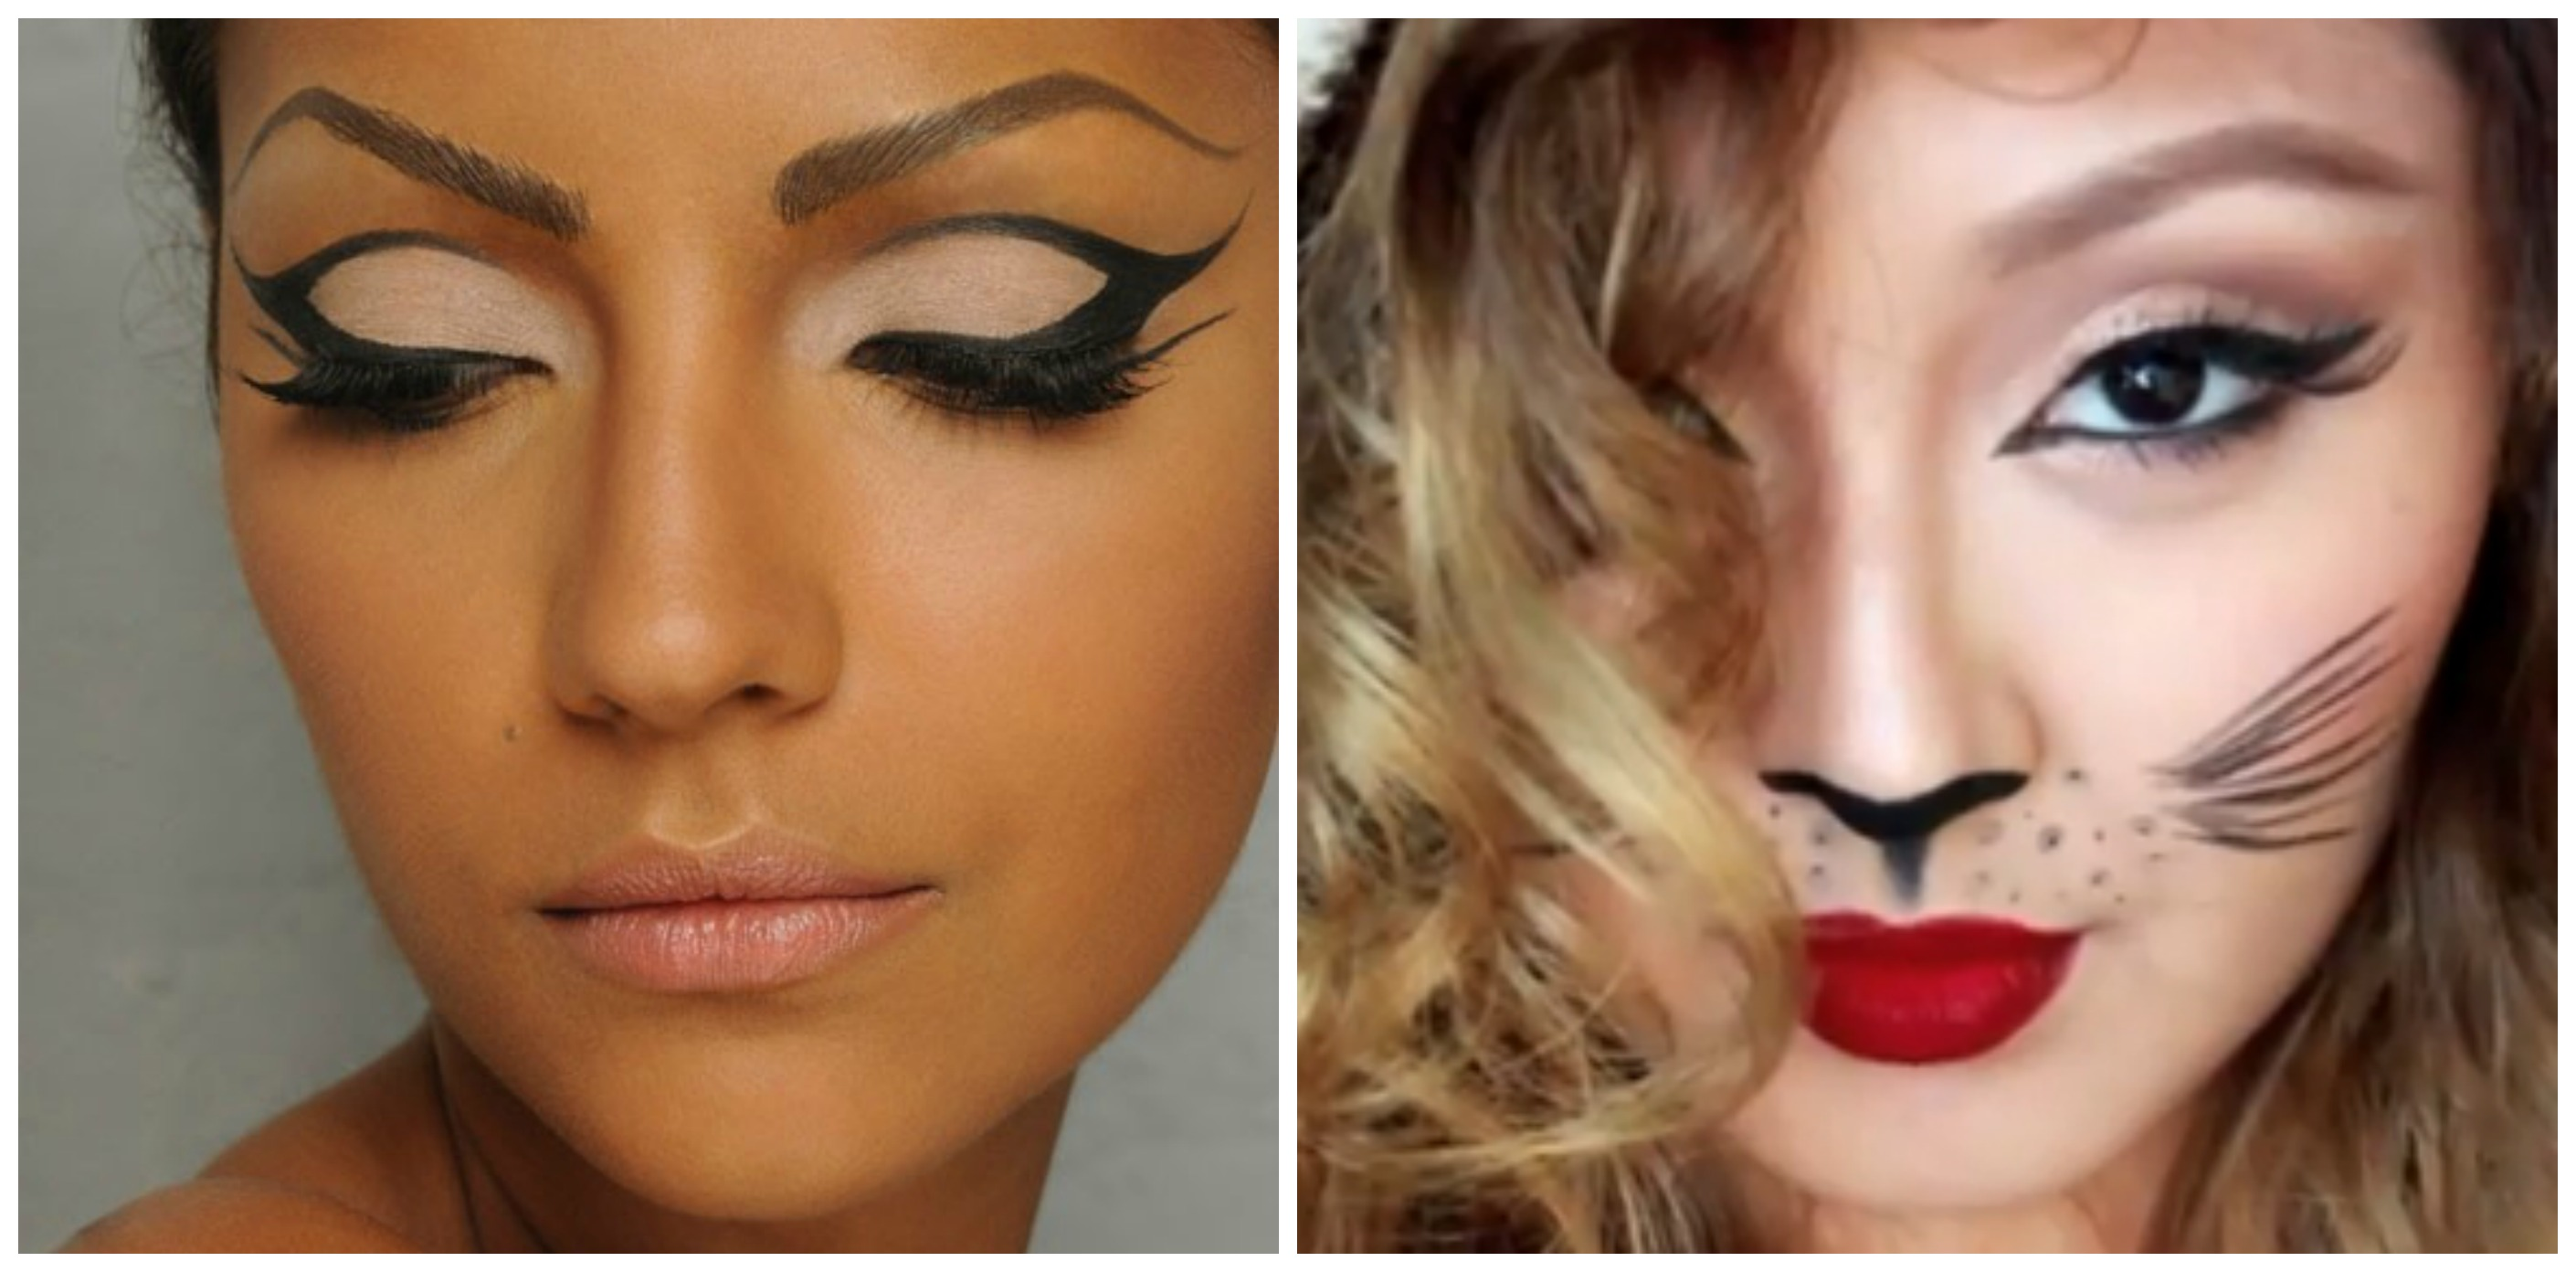 100+ [ Halloween Makeup Ideas For Cat Faces ] | Modernizing ...